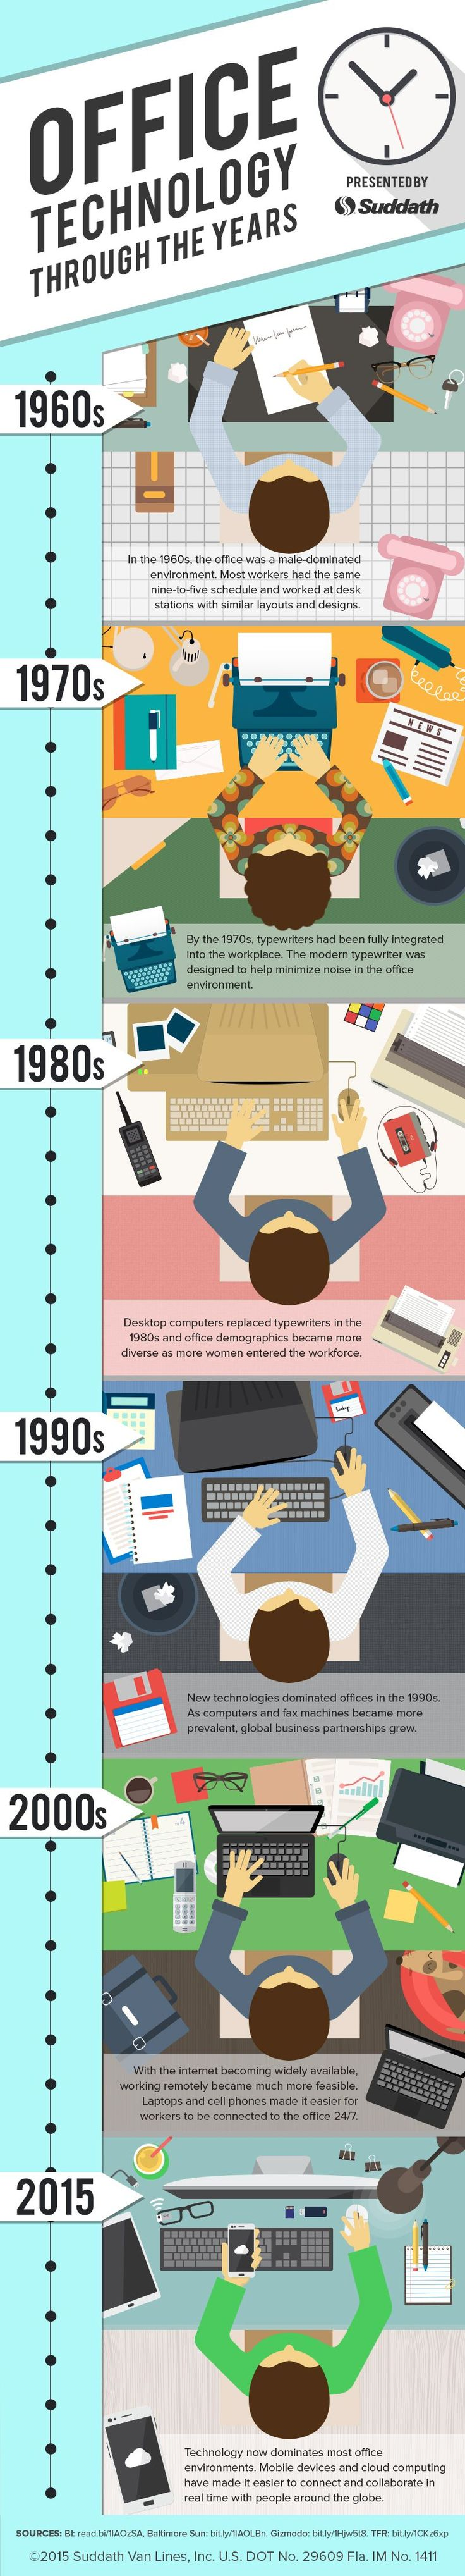 Office Technology Through the Years Infographic - http://elearninginfographics.com/office-technology-years-infographic/